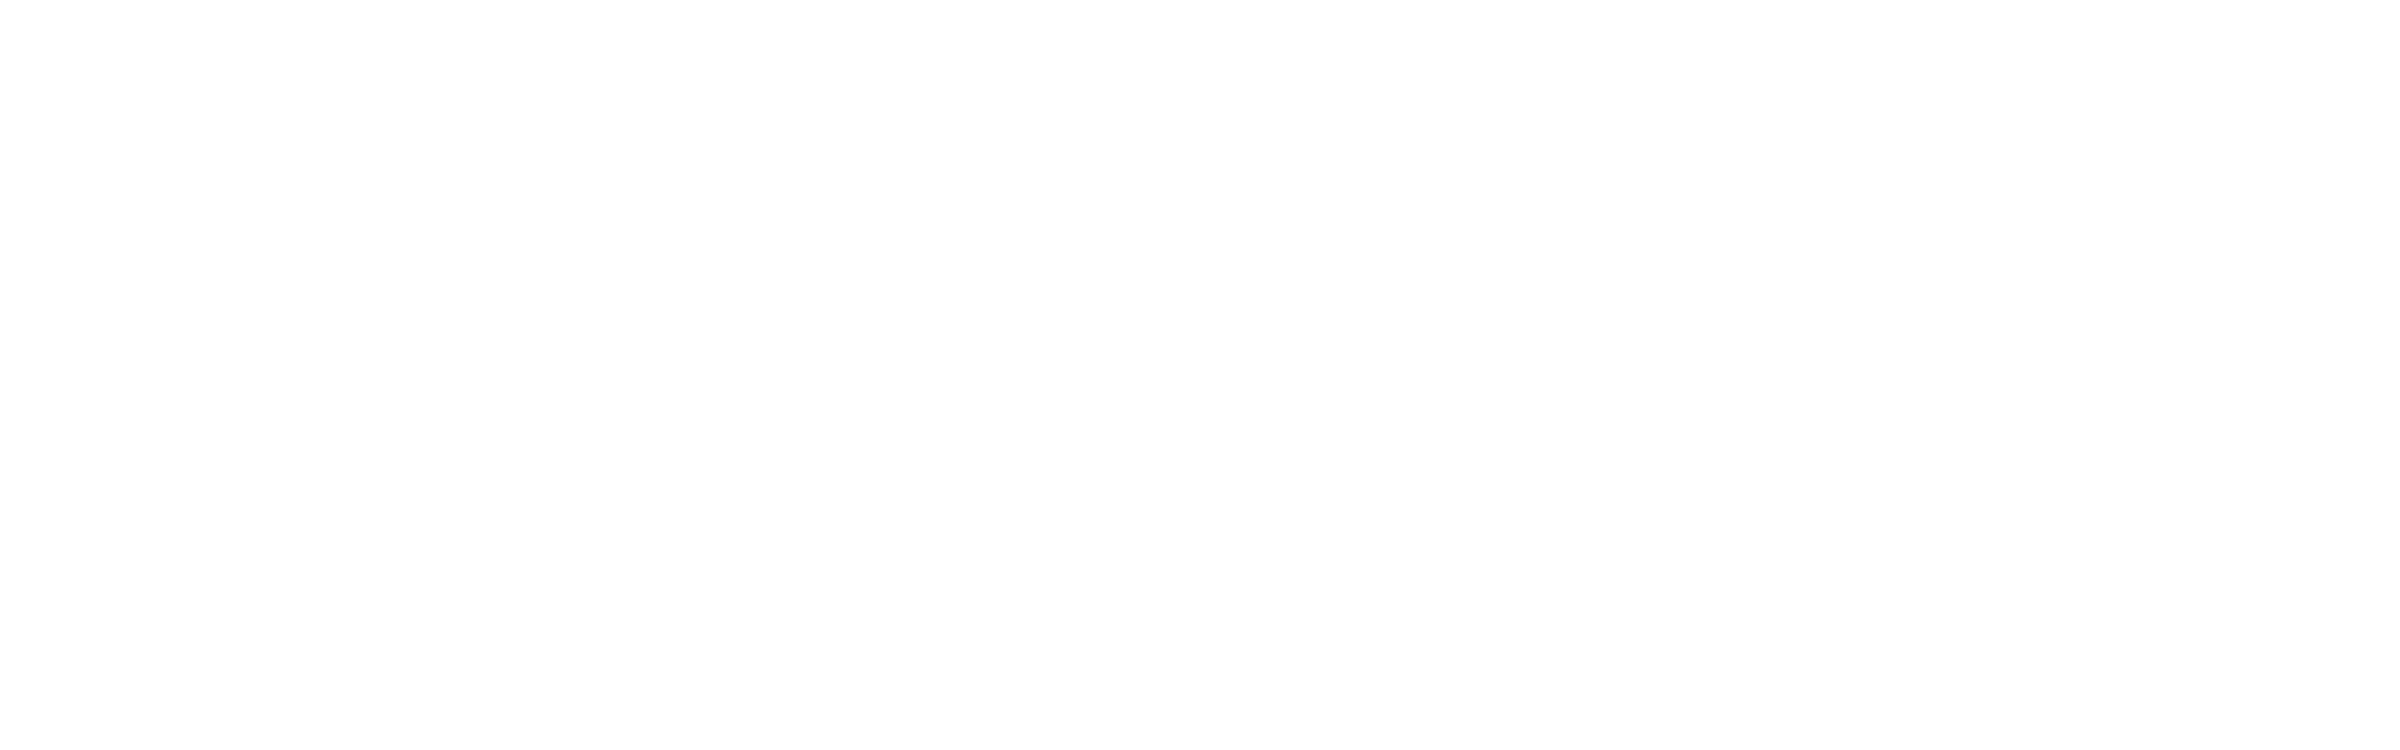 AR_MARKETING_ALLHEALTH_NETWORK_LOGO_2400X750.png